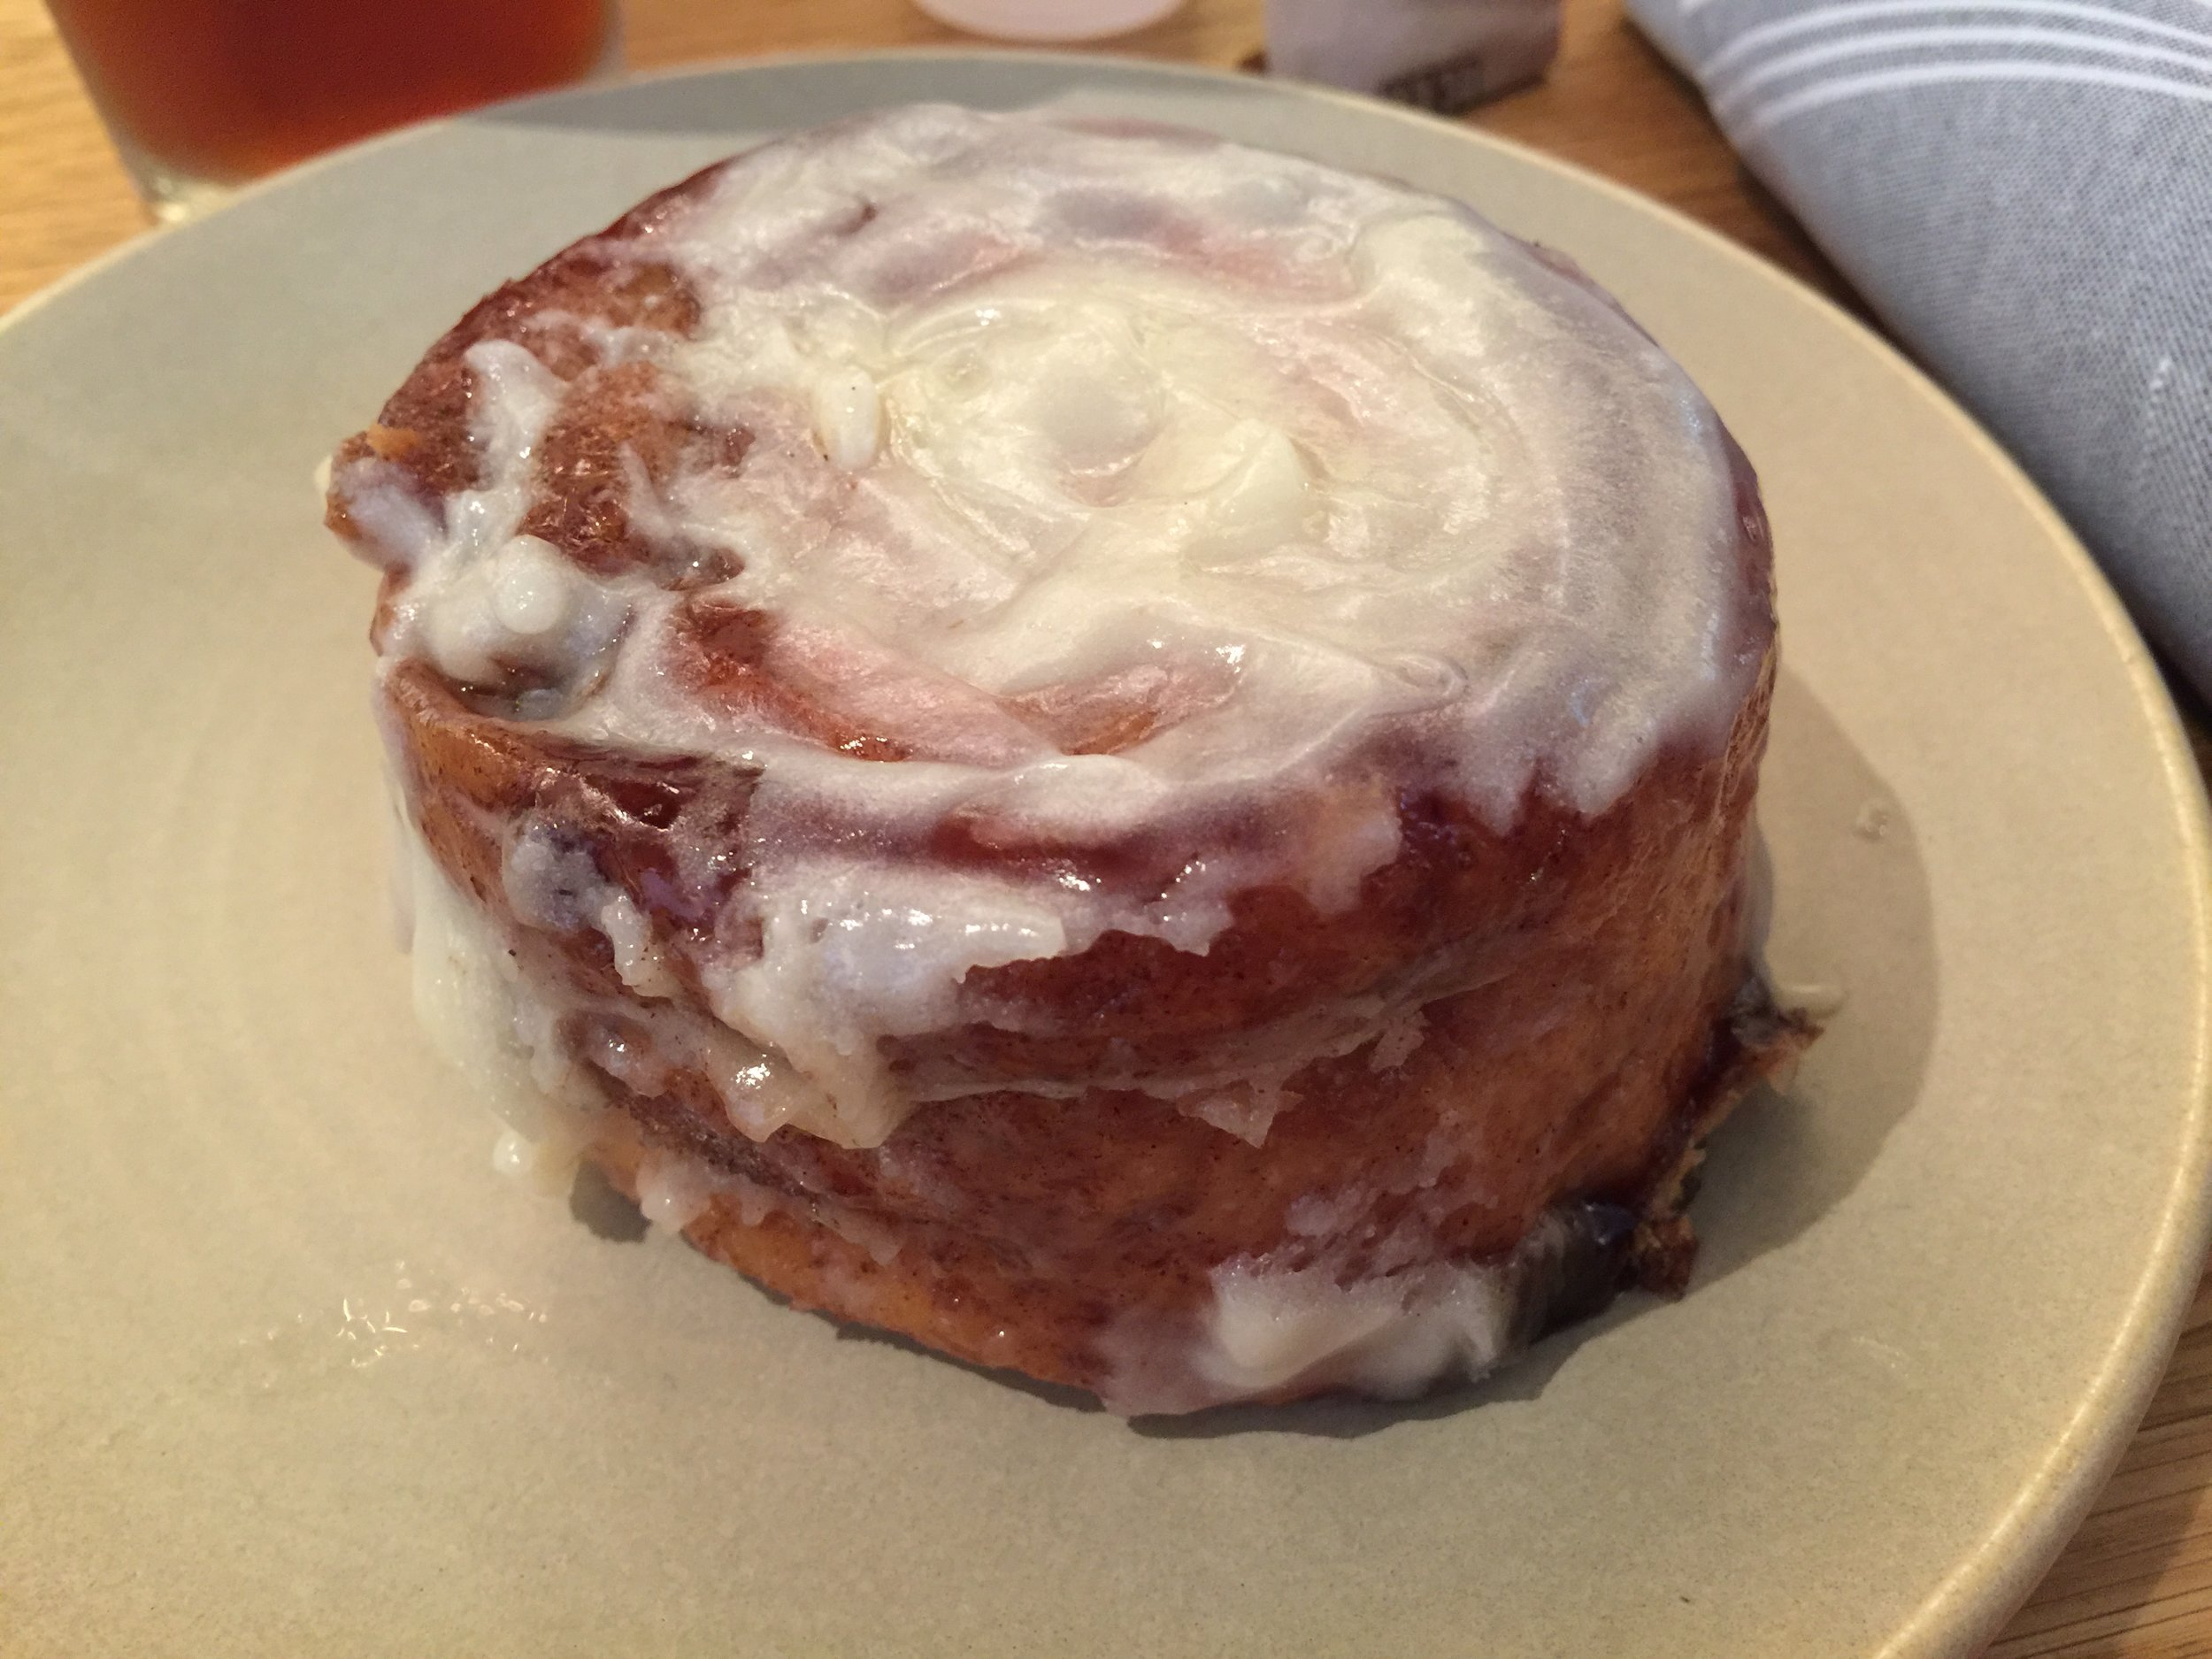 Straight off my phone with metadata that should still be intact - the gluten free cinnamon roll at Summer House Santa Monica is legit!